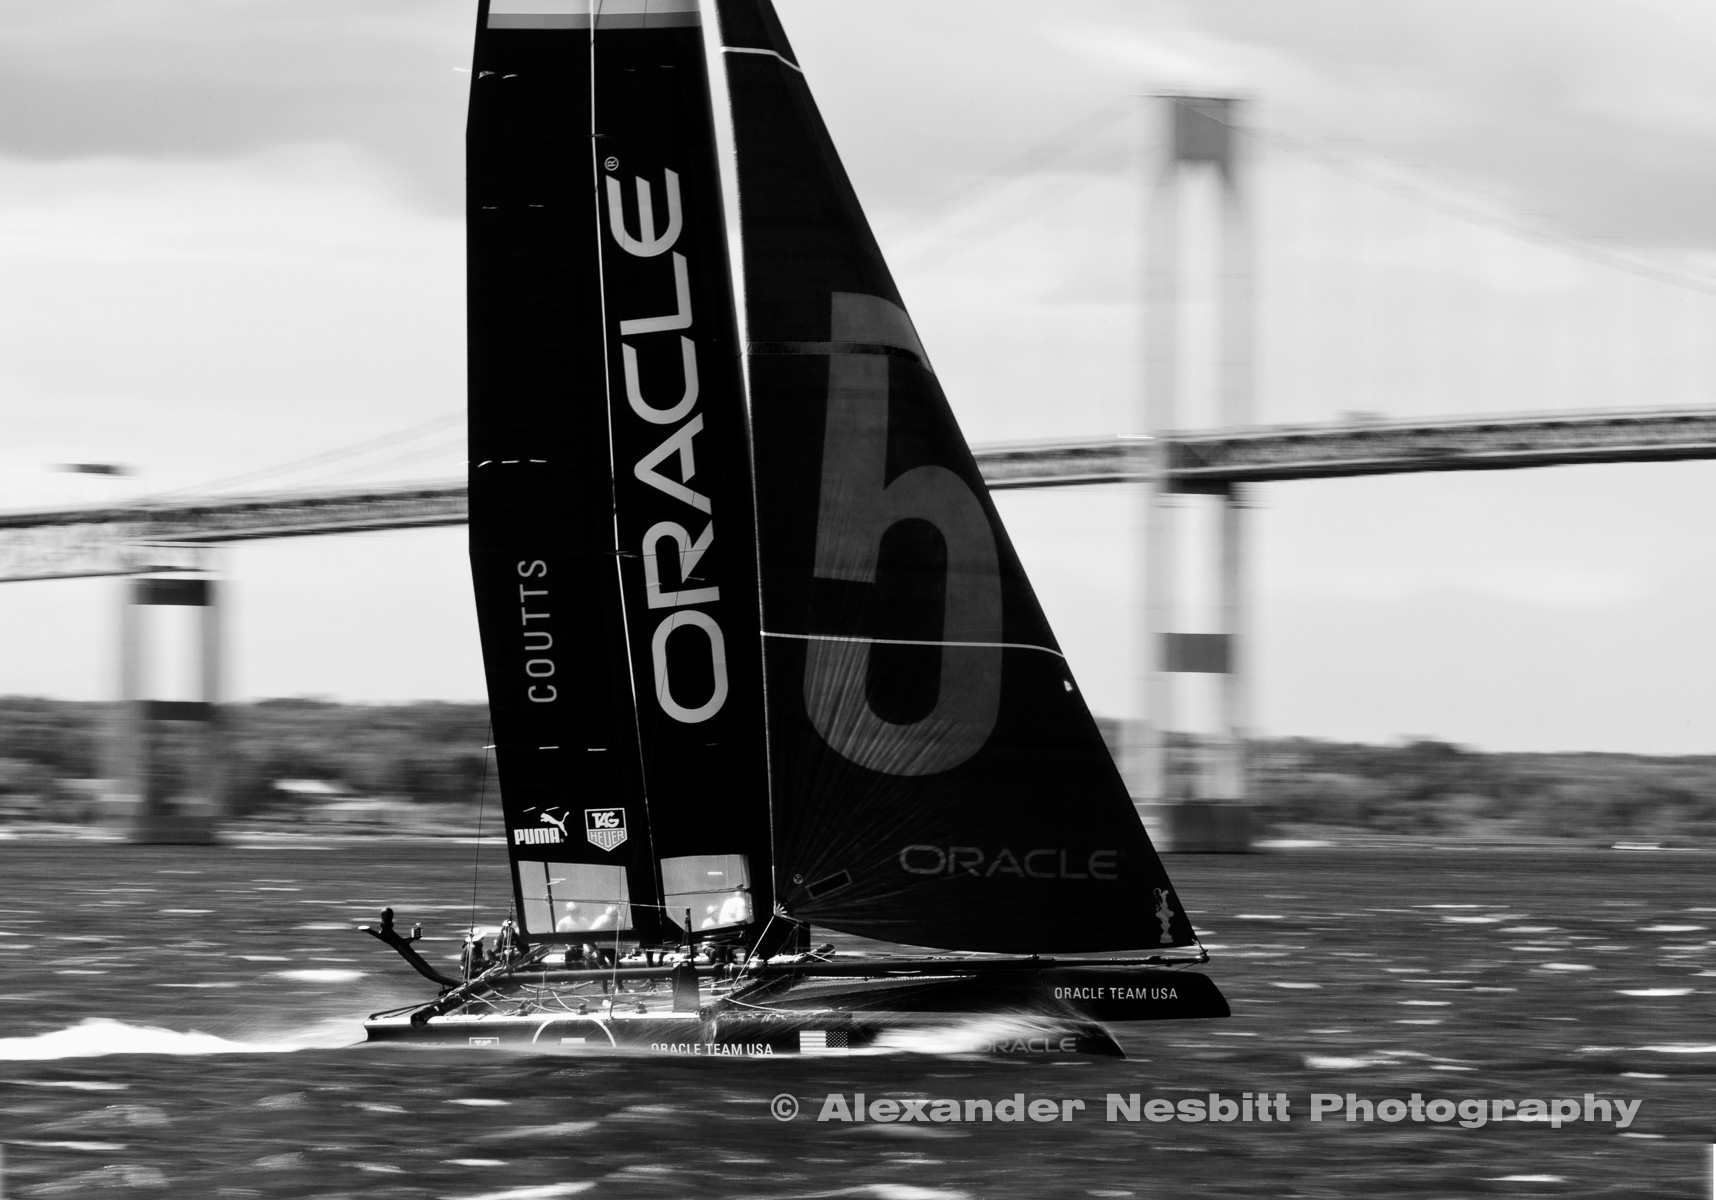 """USA, Newport, RI 2012 - AC45 catamaran Team Oracle with Russell Coutts skippering rips through Naragansett bay past the Newport Bridge during practice rounds of the America's Cup World Championship racing. Intensely careful panning of the 400mm lens with 1/15 second shutter speed brings out the speed blur """"in camera."""""""